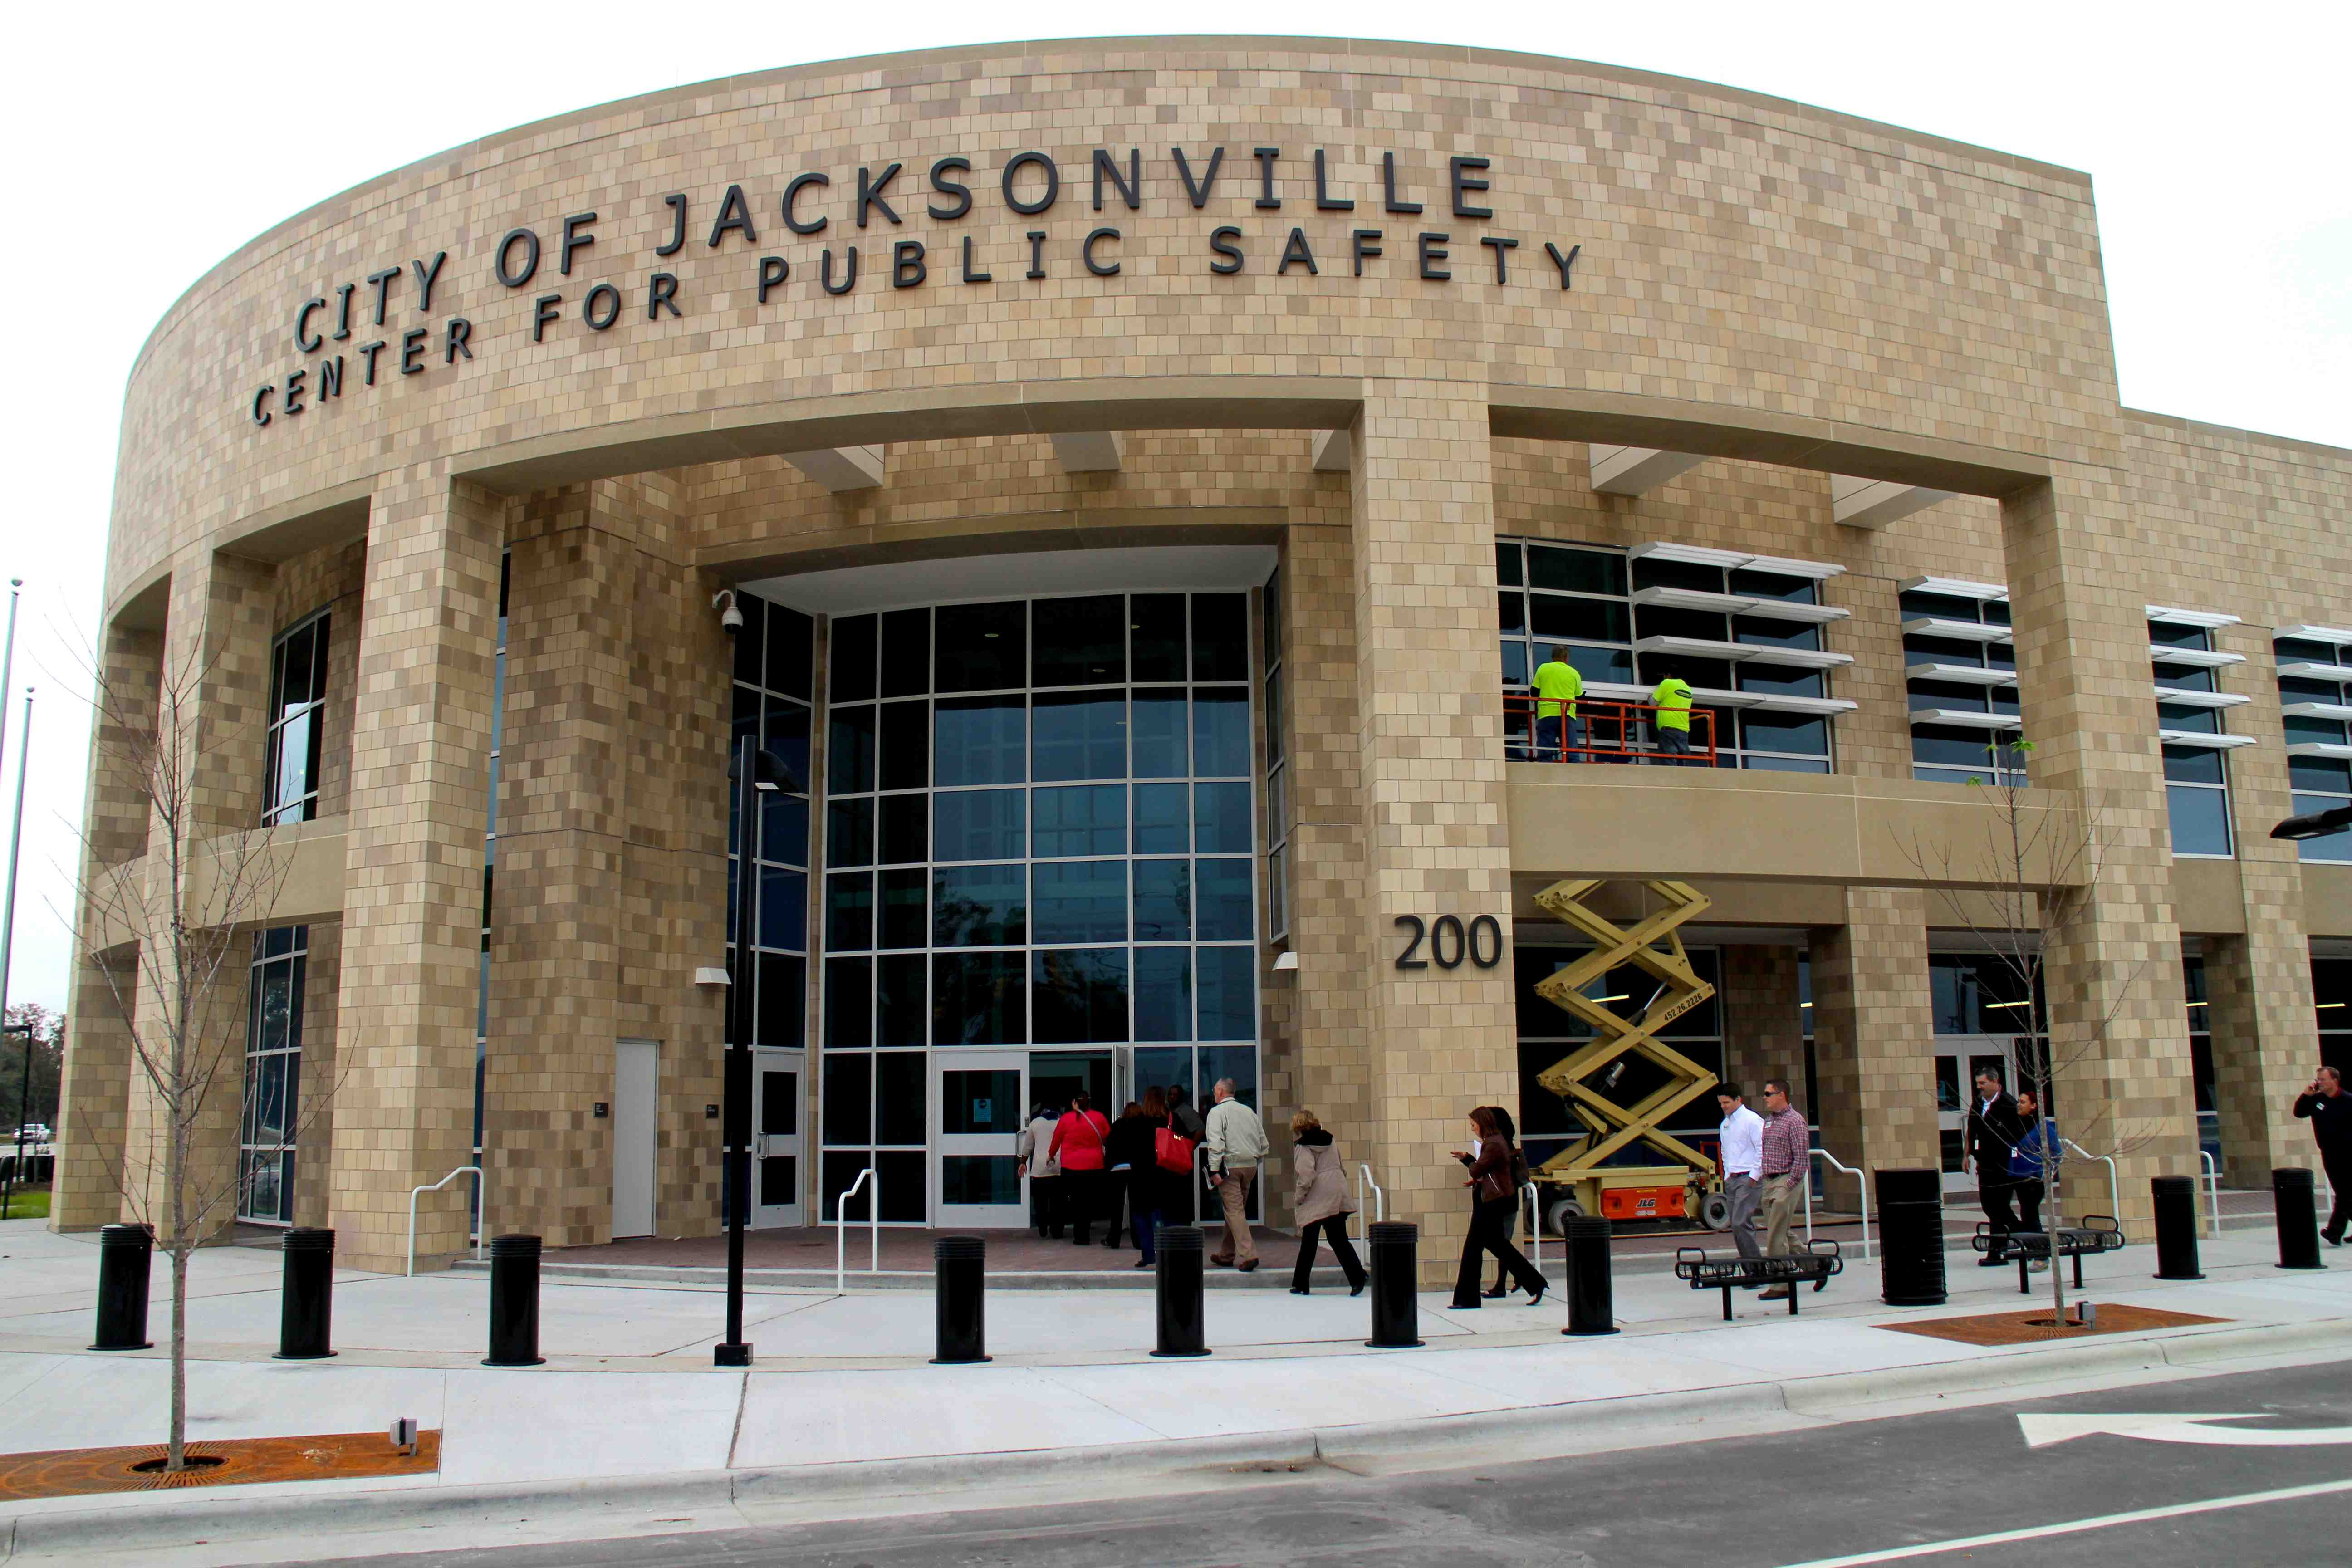 City of Jacksonville - Center for Public Safety